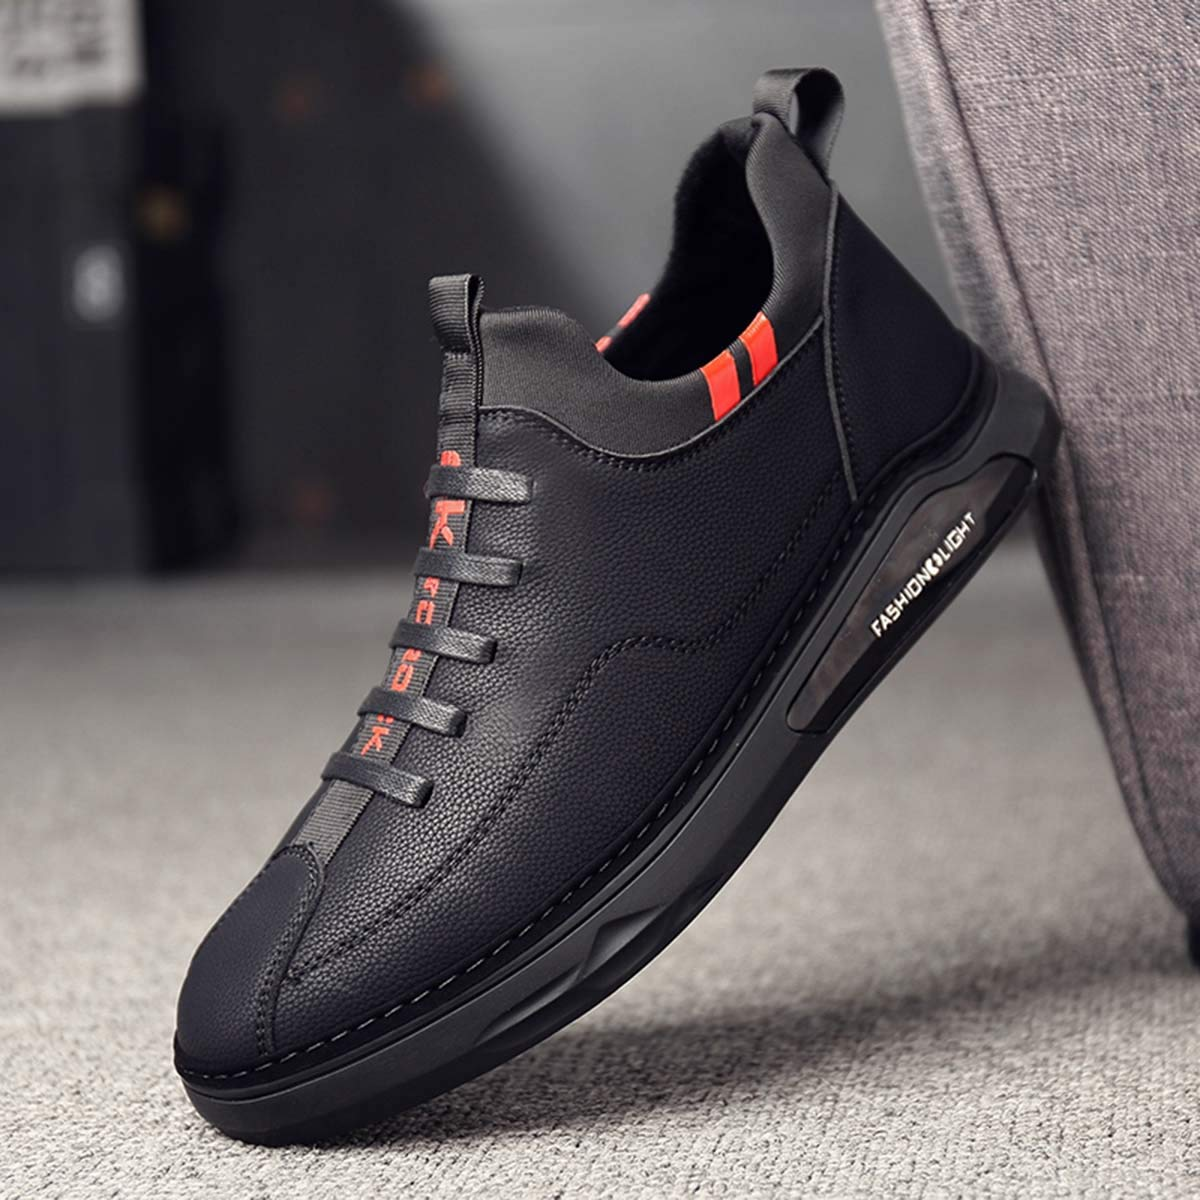 Men Shoes Outdoor Breathable Comfortable Genuine Leather Lace-up Fashion Male Flat Shoes Outdoor Travel Walking Low Top Sneakers Black 8